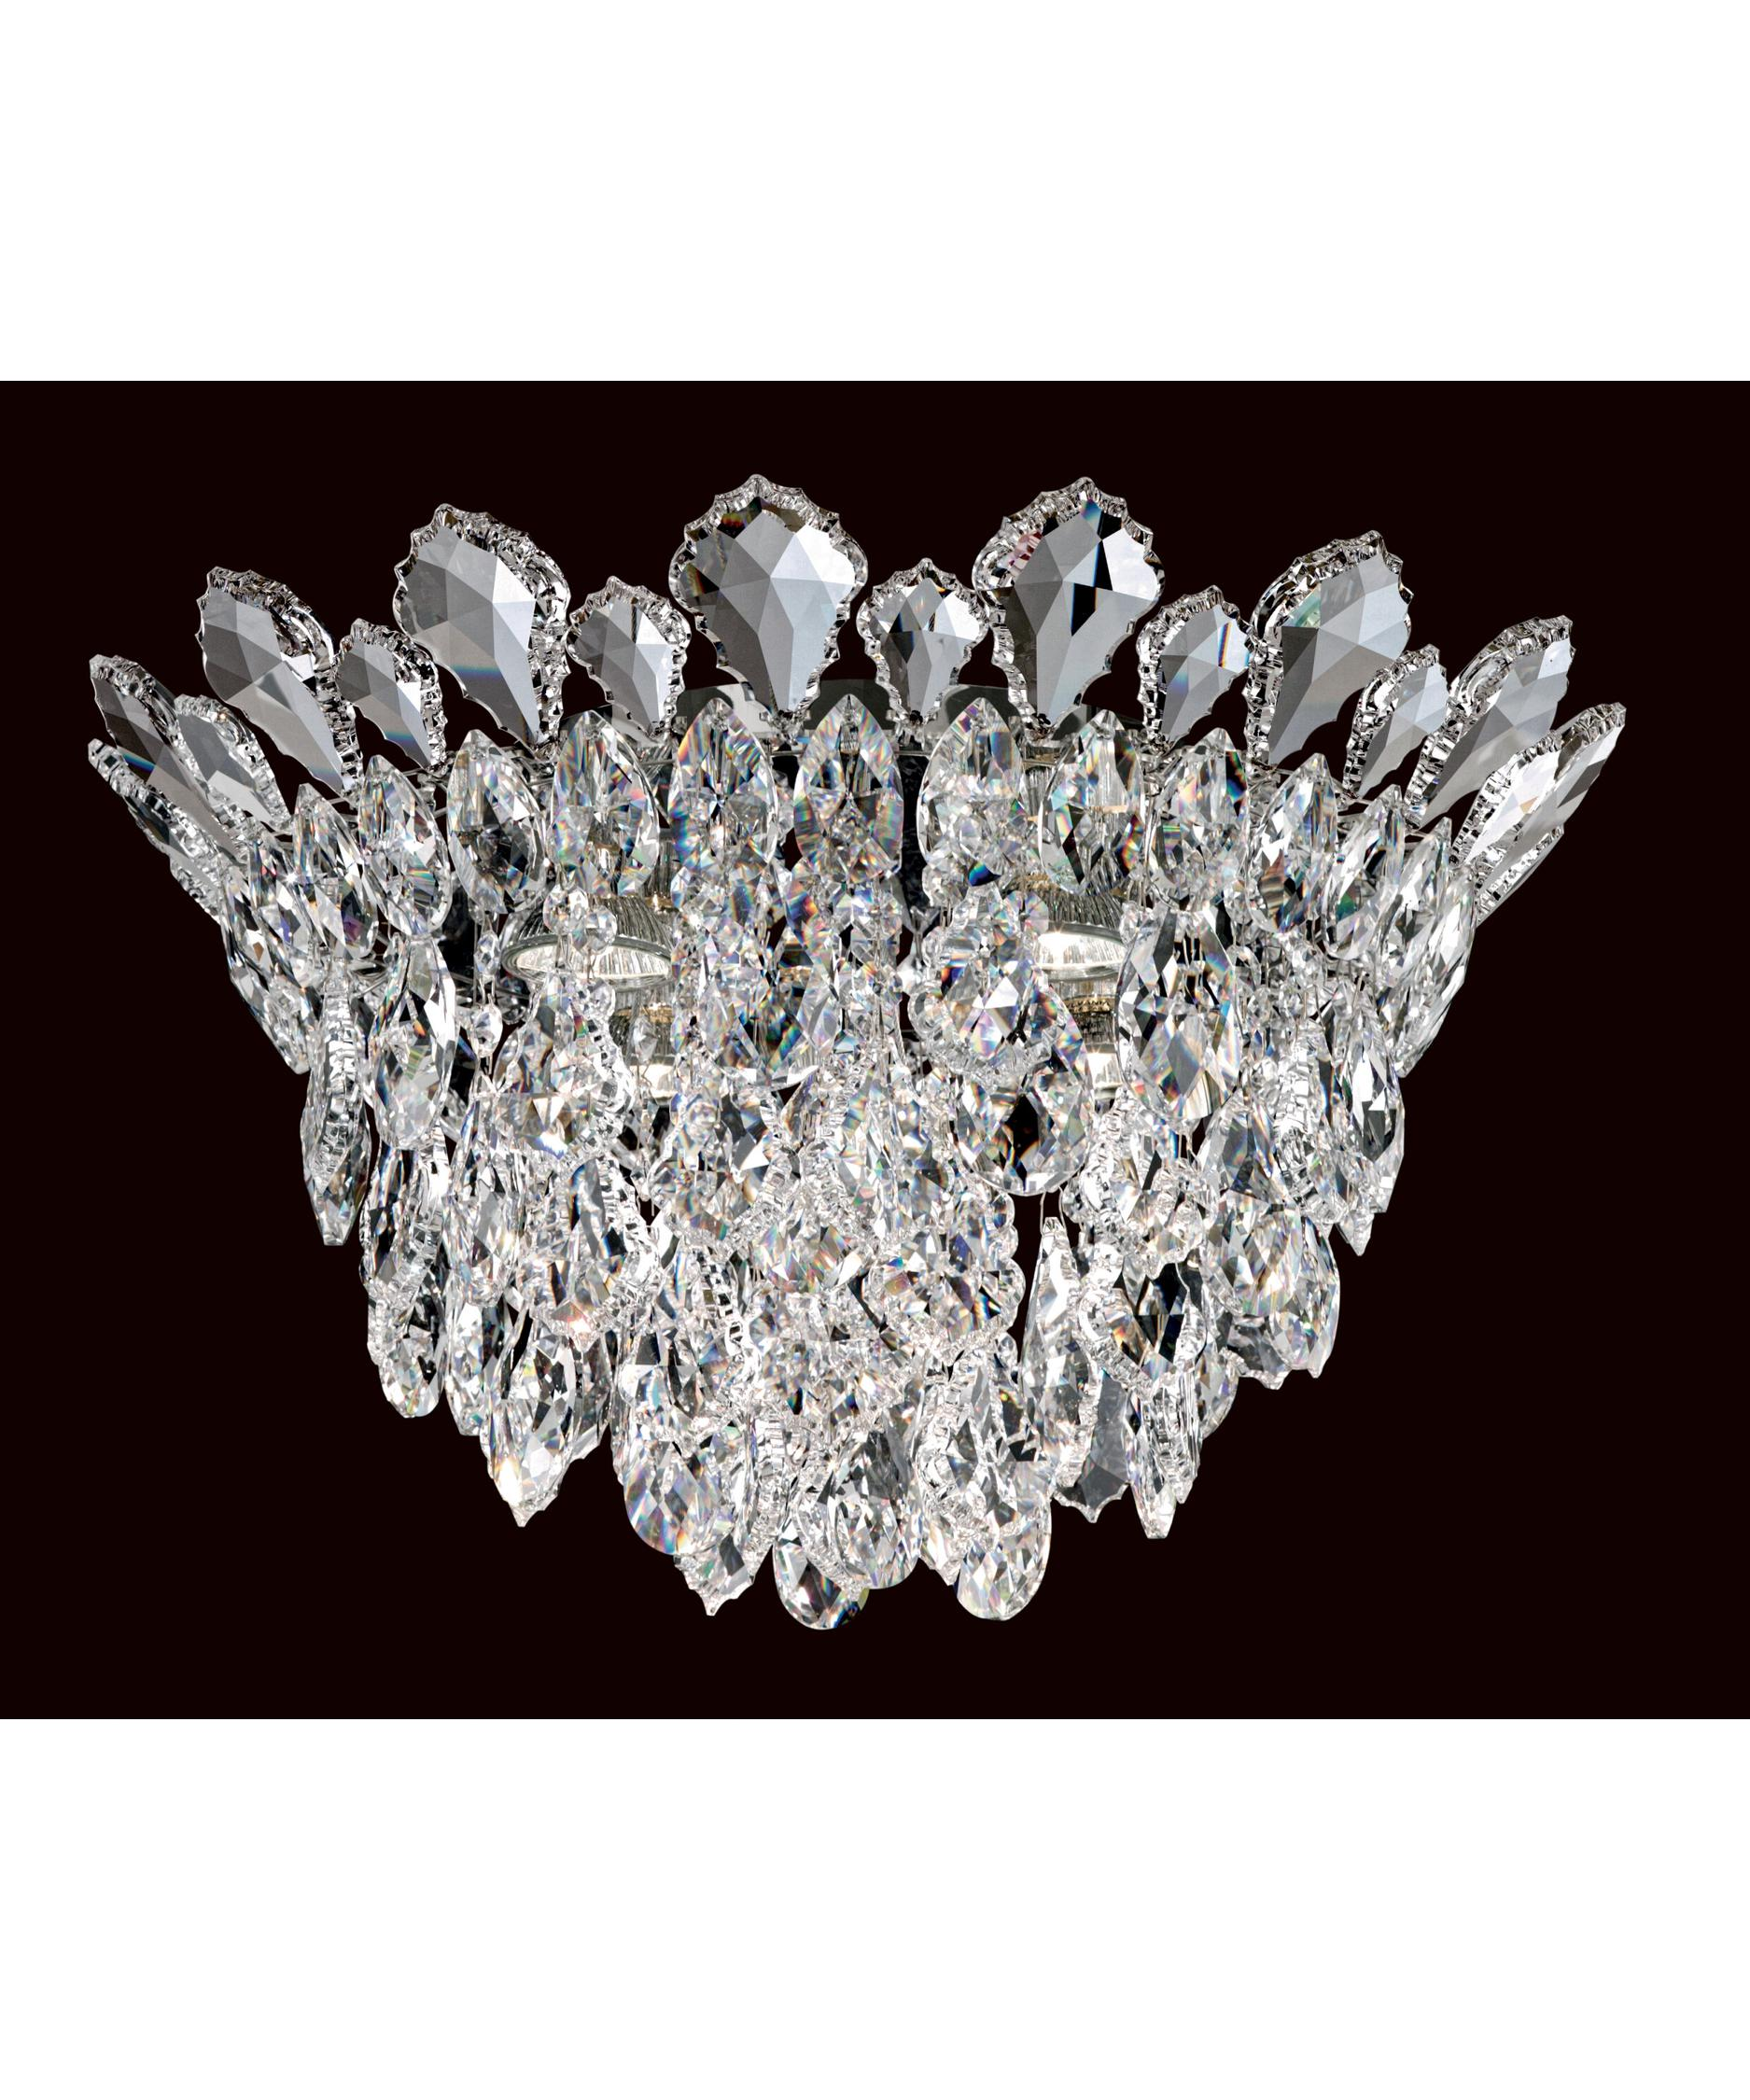 schonbek tr1201 trilliane strands 17 inch wide 4 light mini chandelier capitol lighting - Schonbek Lighting